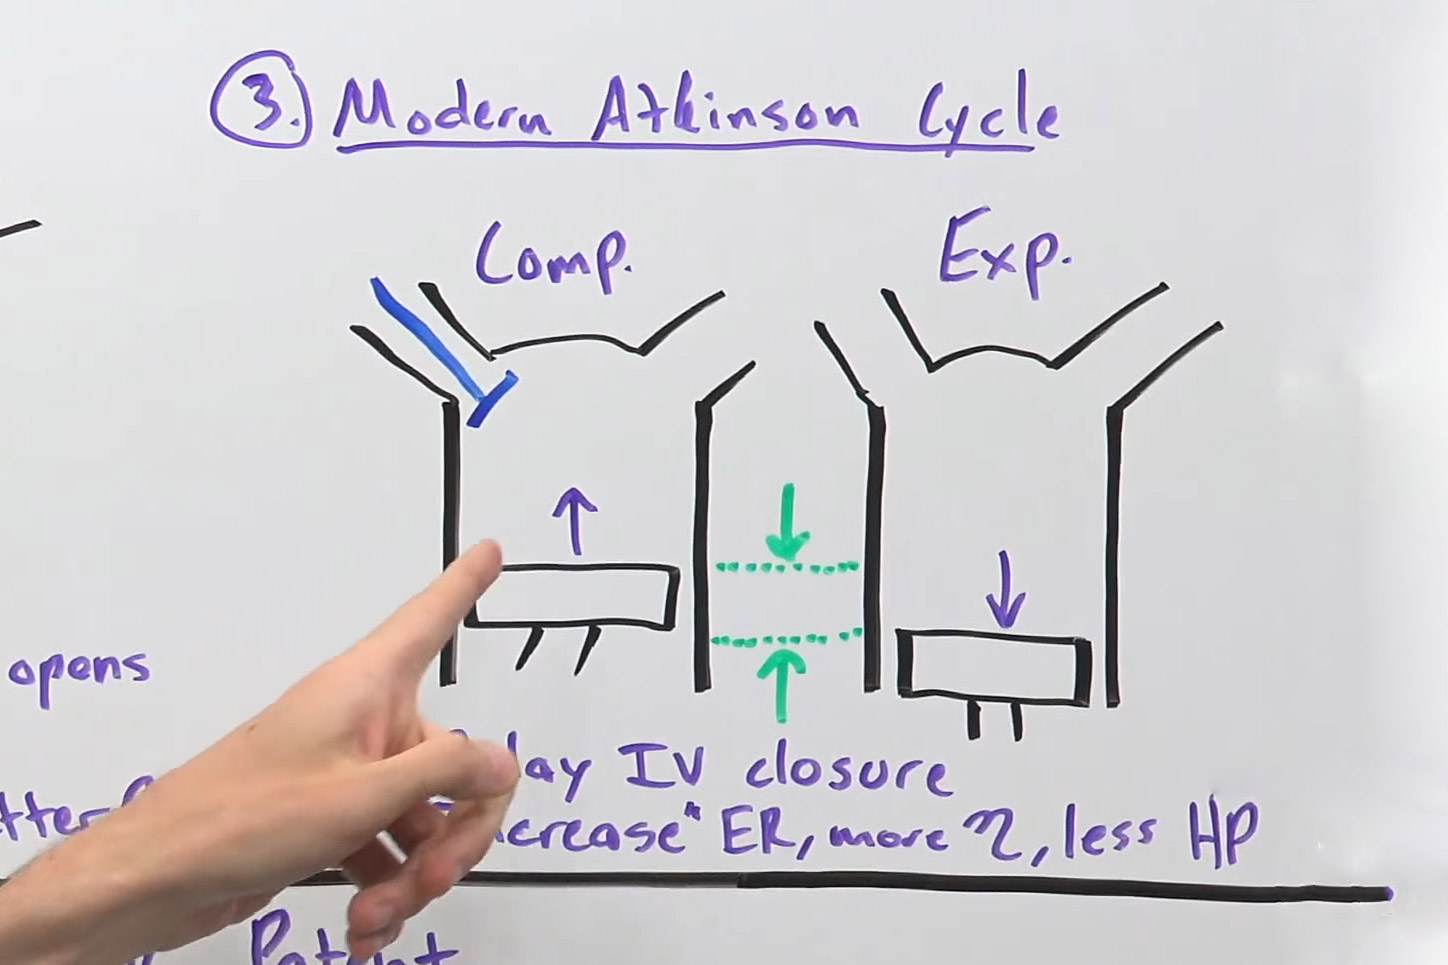 hight resolution of in the modern atkinson cycle effective compression ratio is reduced by holding the intake valve open thorough the first part of the compression stroke